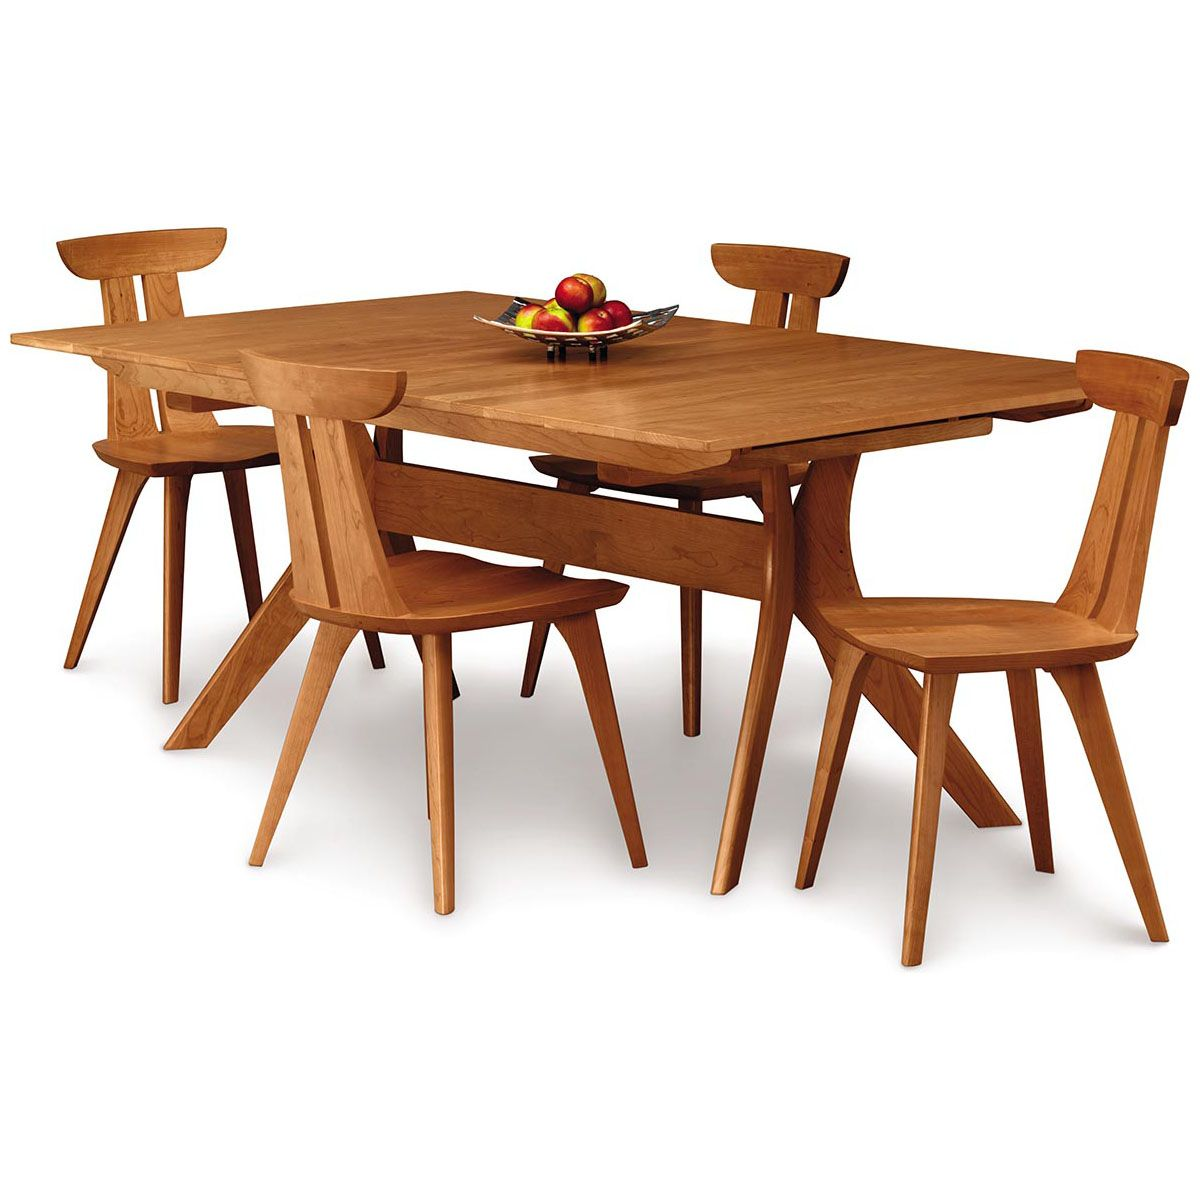 Copeland audrey 42 x 72 extension table with easystow extension and leaf storage 6 aud 20 03